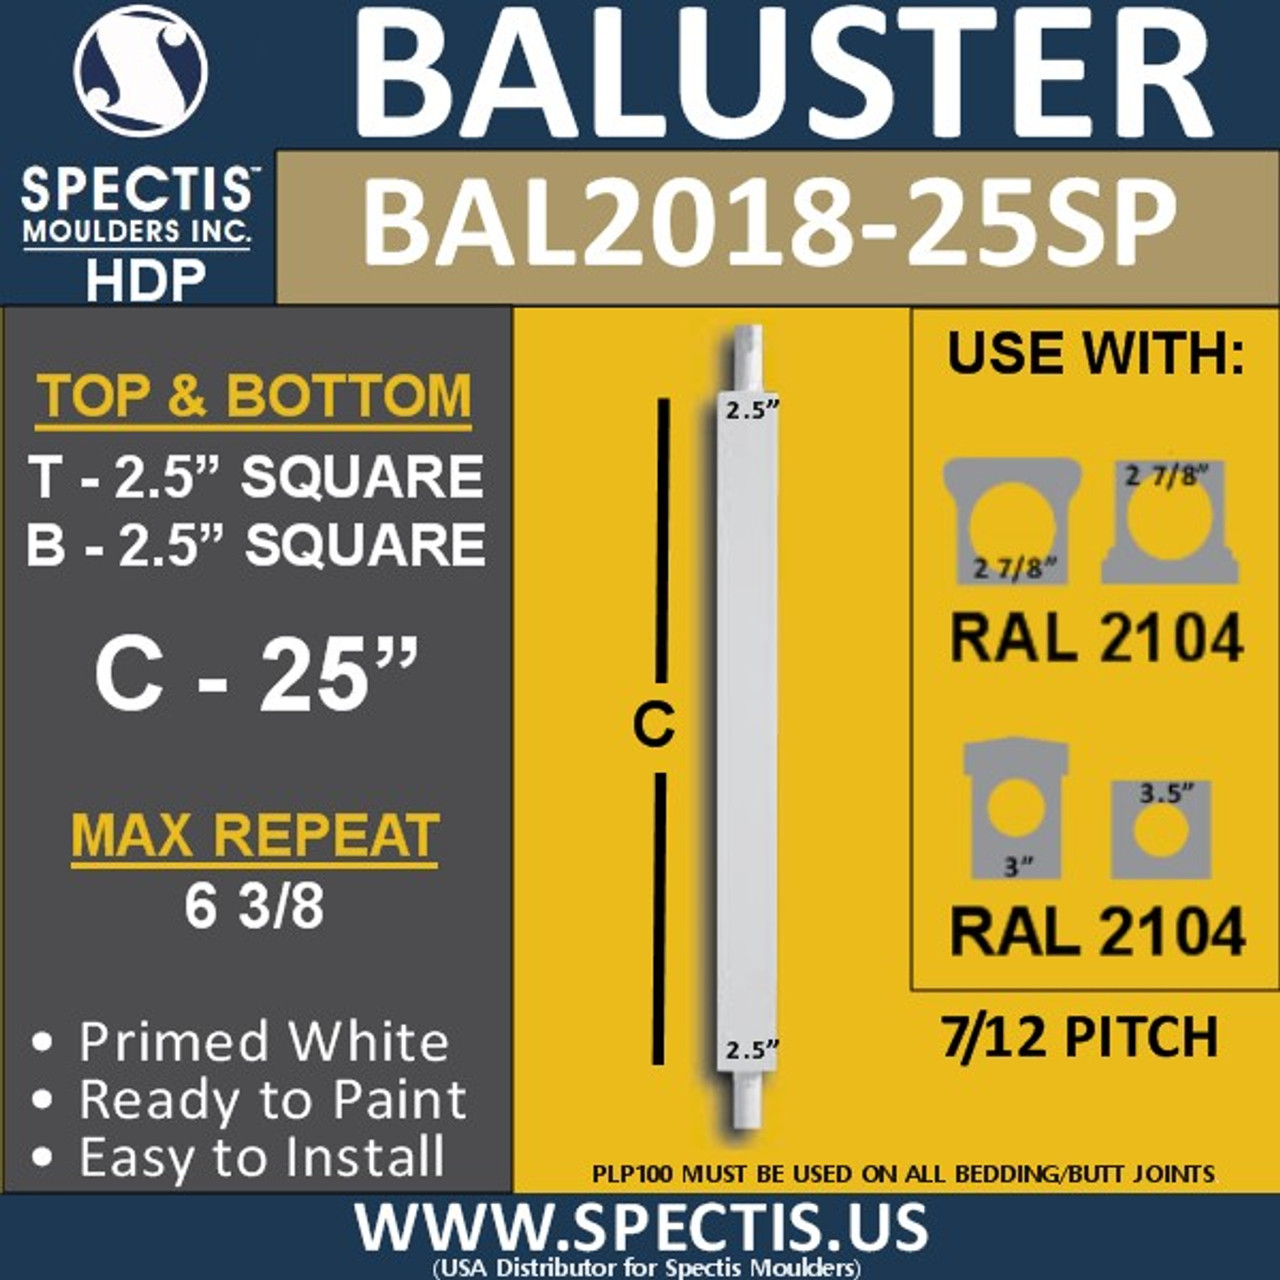 "BAL2018-25P Urethane 7/12 Pitched Baluster 2 1/2""W X 25""H"